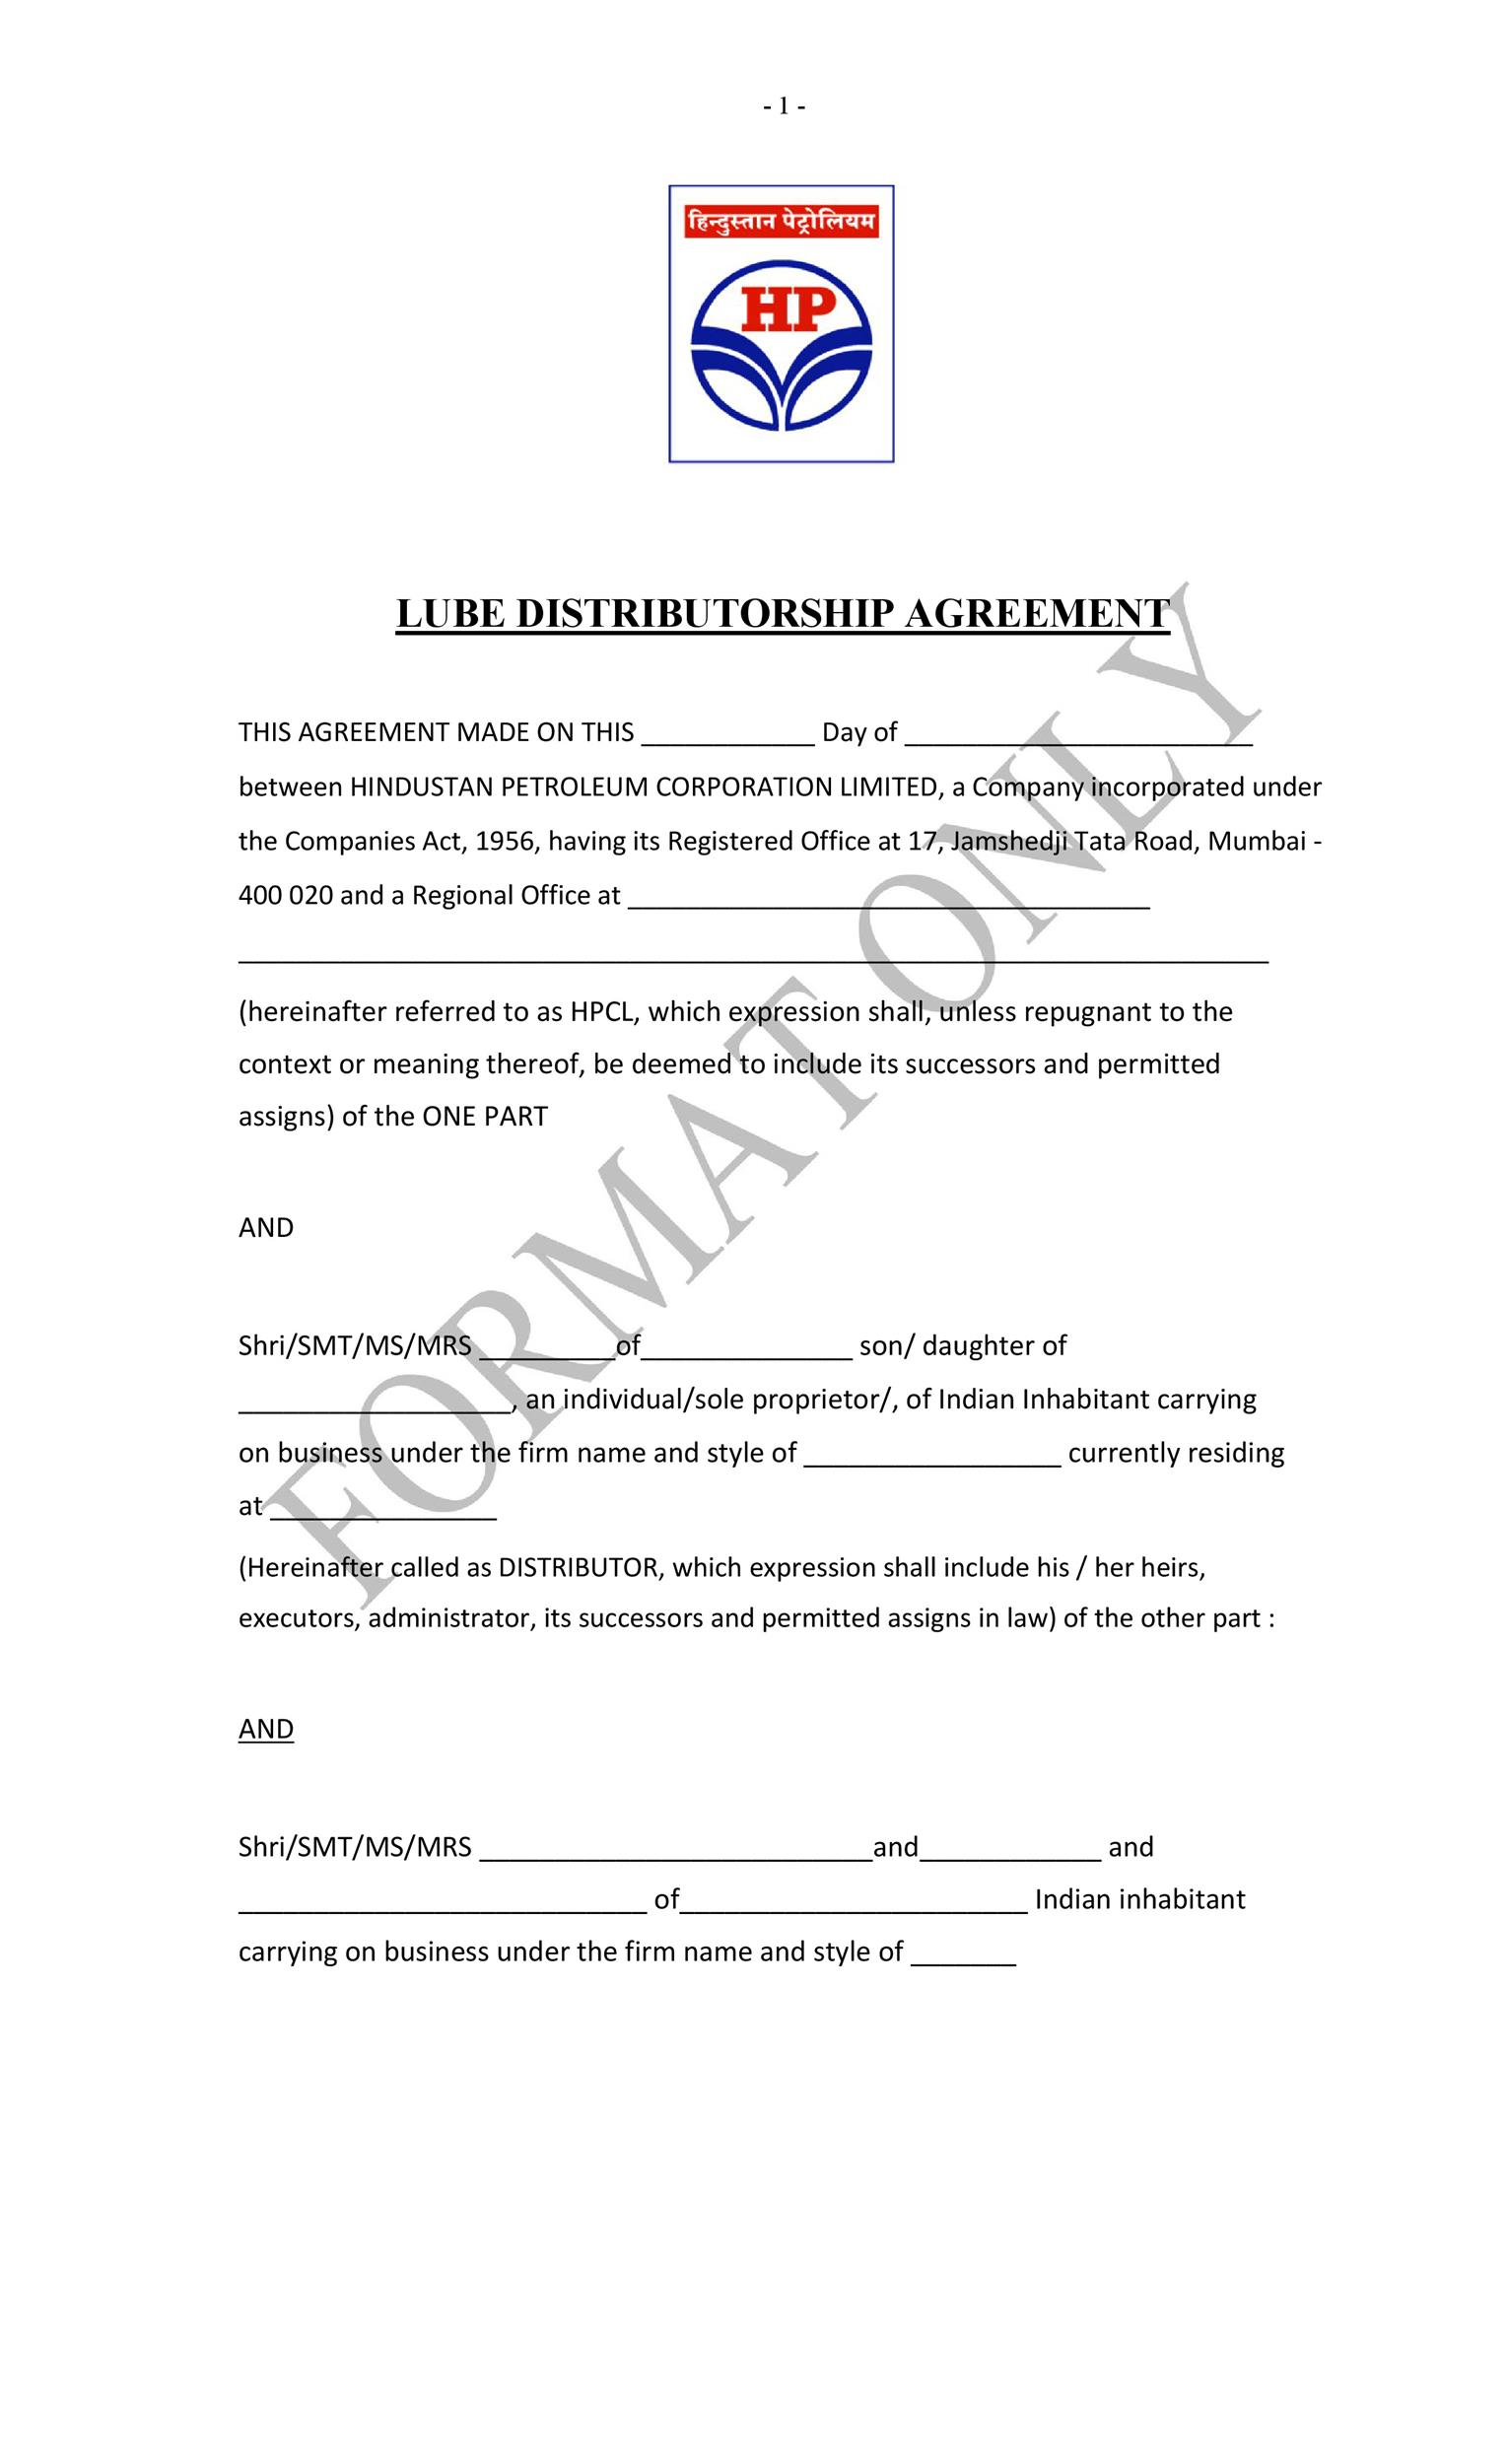 009 Awful Exclusive Distribution Agreement Template Free Download Inspiration Full